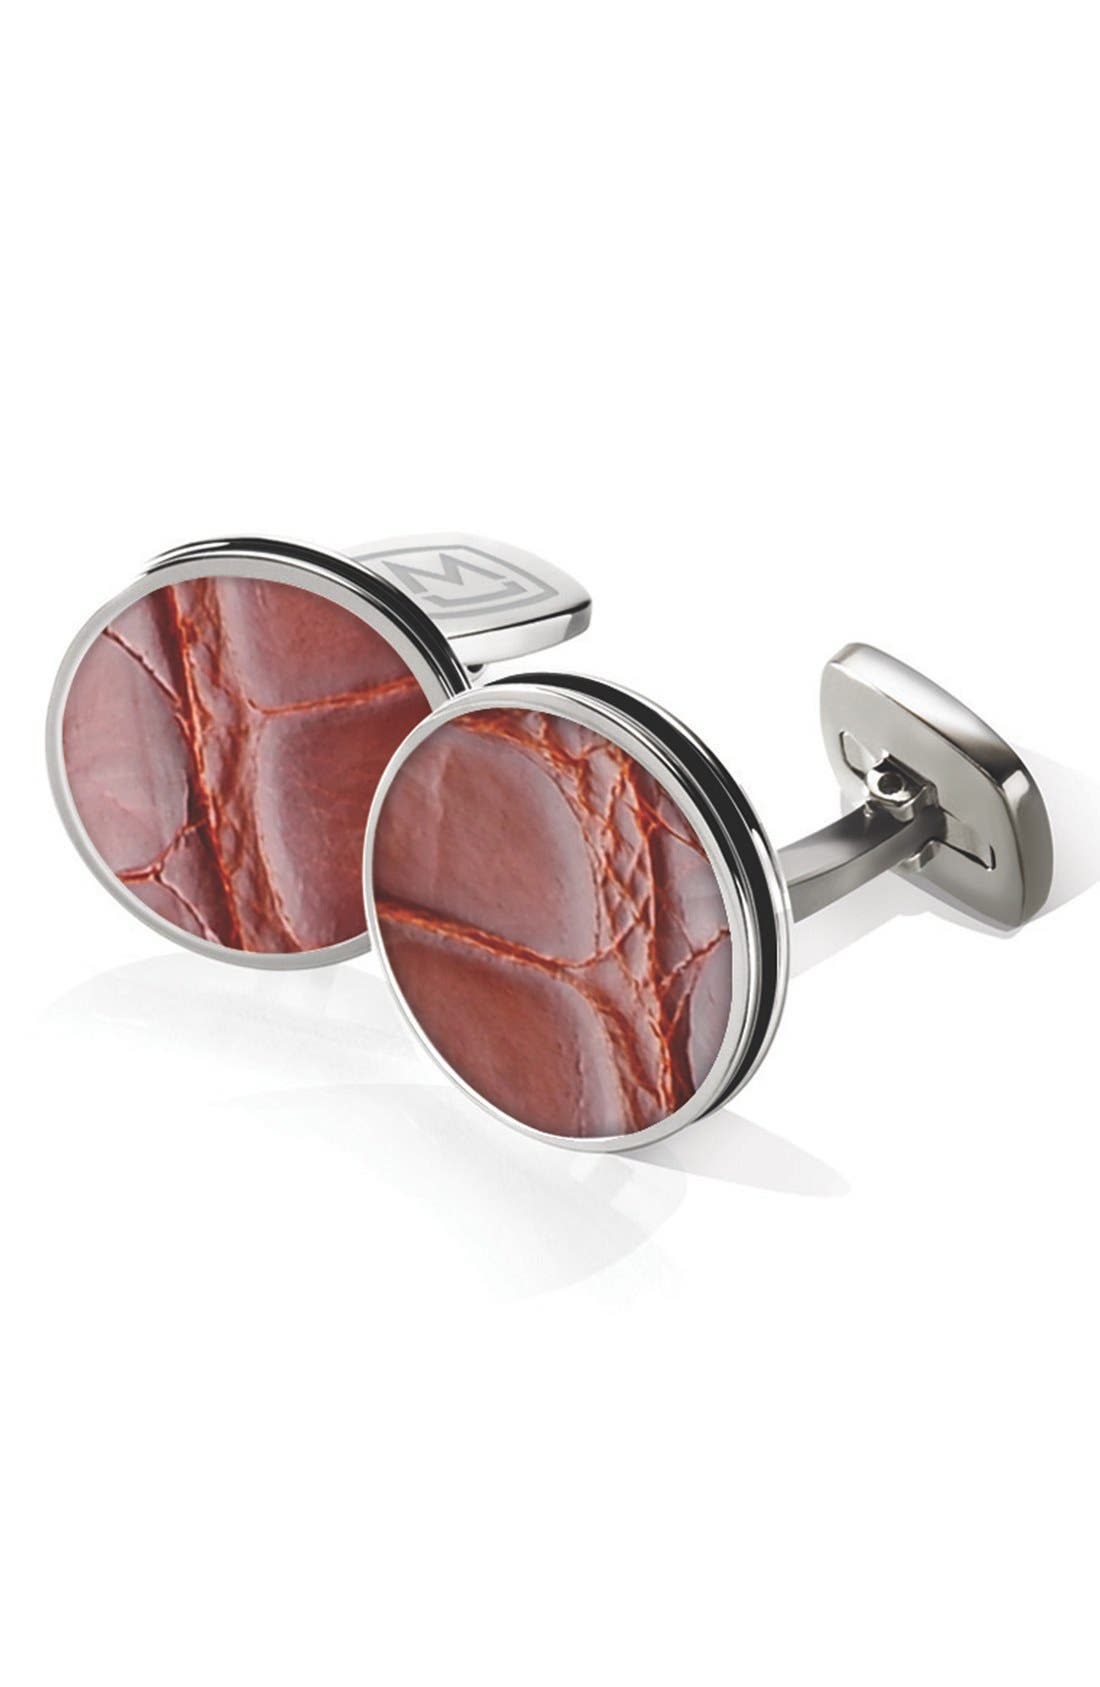 Alternate Image 1 Selected - M-Clip® Alligator Cuff Links